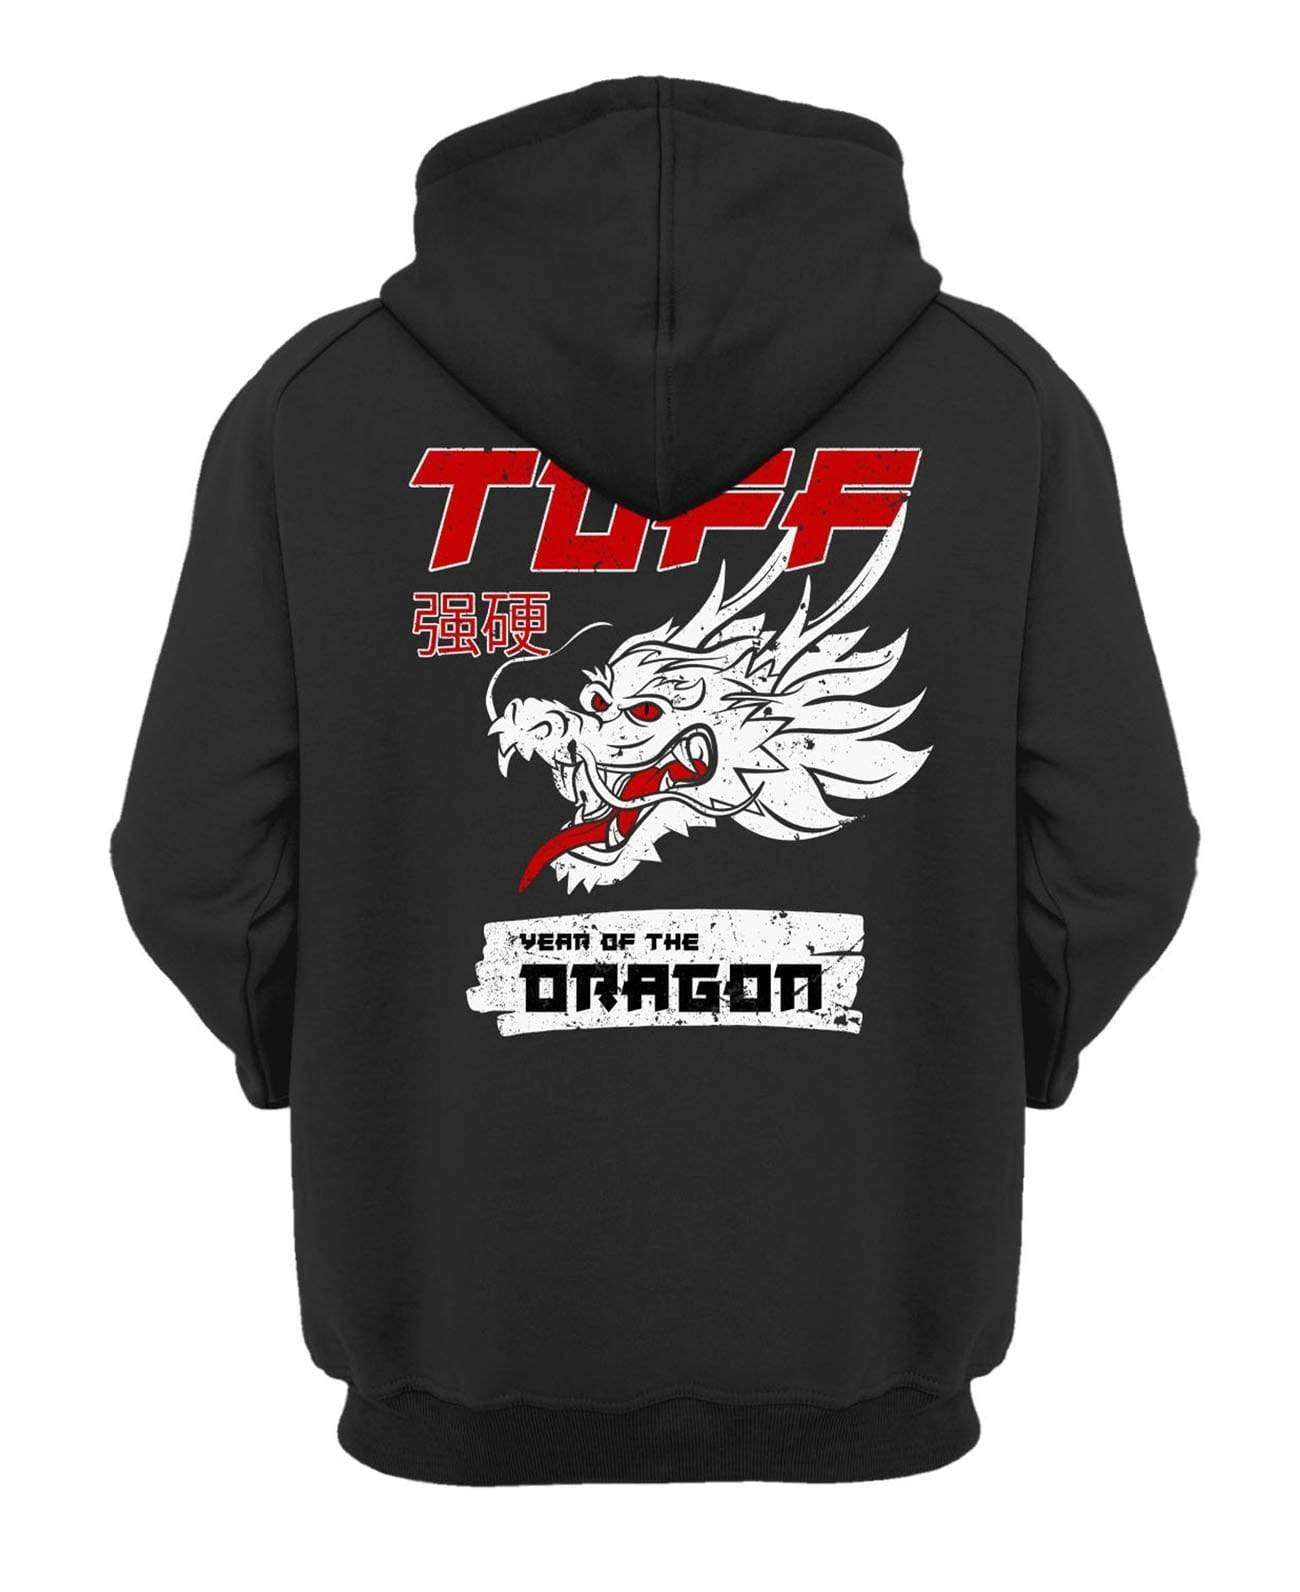 Year of the Dragon Hooded Sweatshirt XS / Black TuffWraps.com